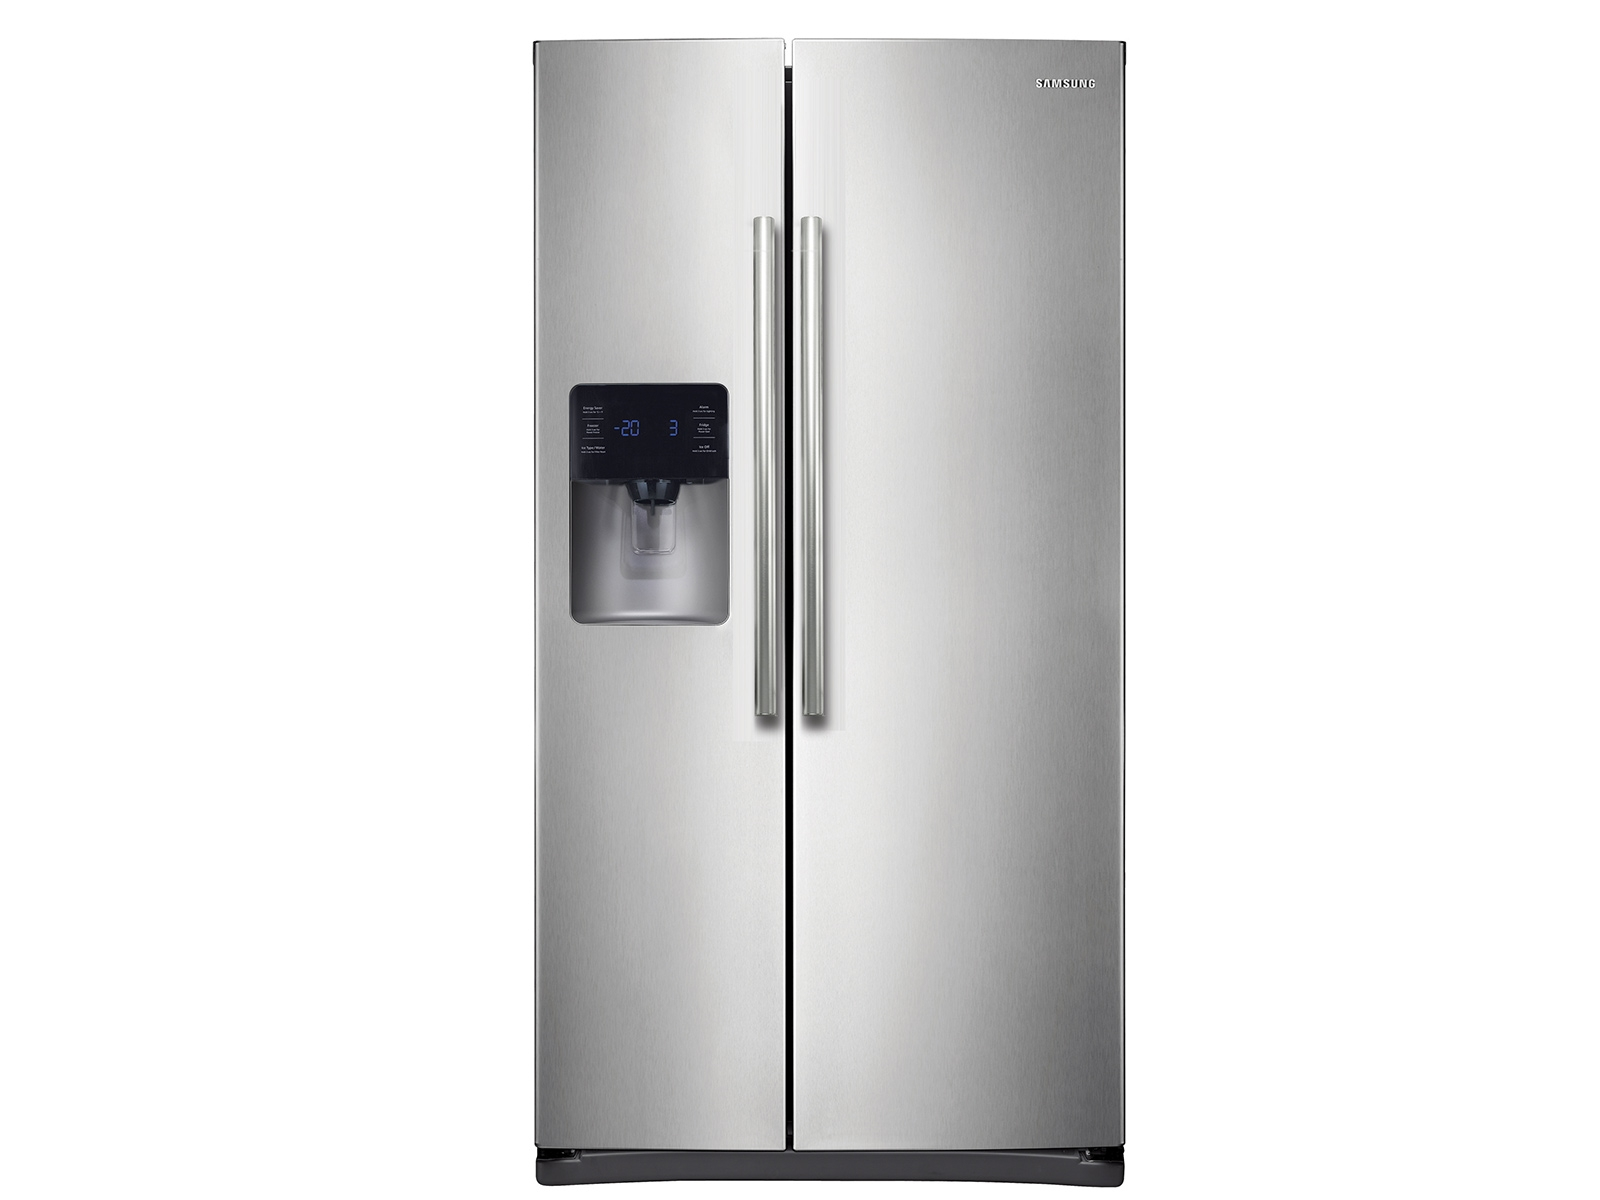 medium resolution of side by side refrigerator with in door ice maker refrigerators rs25h5111sr